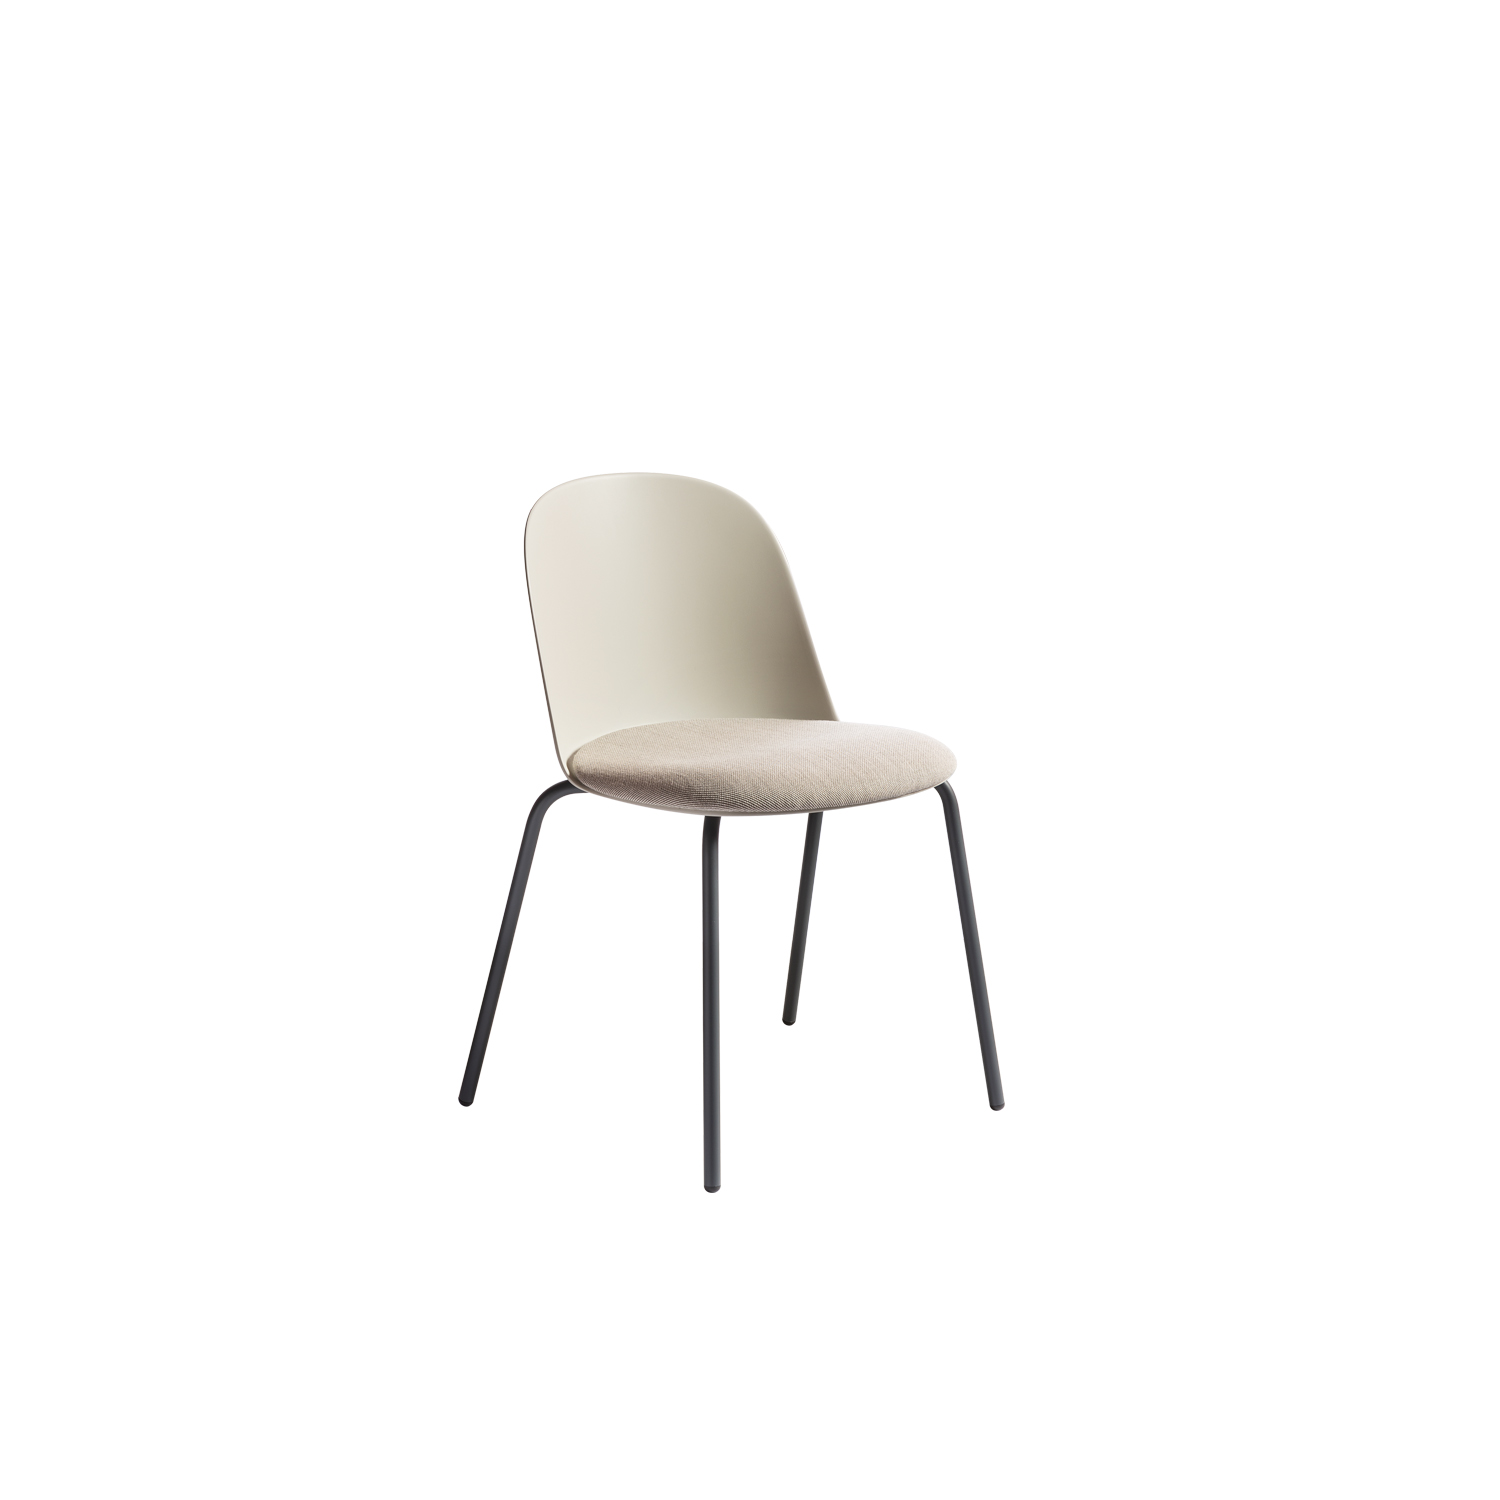 Mariolina Basic Chair - Mariolina came from an exploration into the world of polypropylene and its new developments, combining it with a delicate, honest aesthetic. The body is so simple that it can be drawn without the pen leaving the paper, balancing a careful style, attentive to the present, with the desire to break free of fashion. Mariolina is the answer to the need for an eclectic product, made with a contemporary production method and suitable for everyday life.